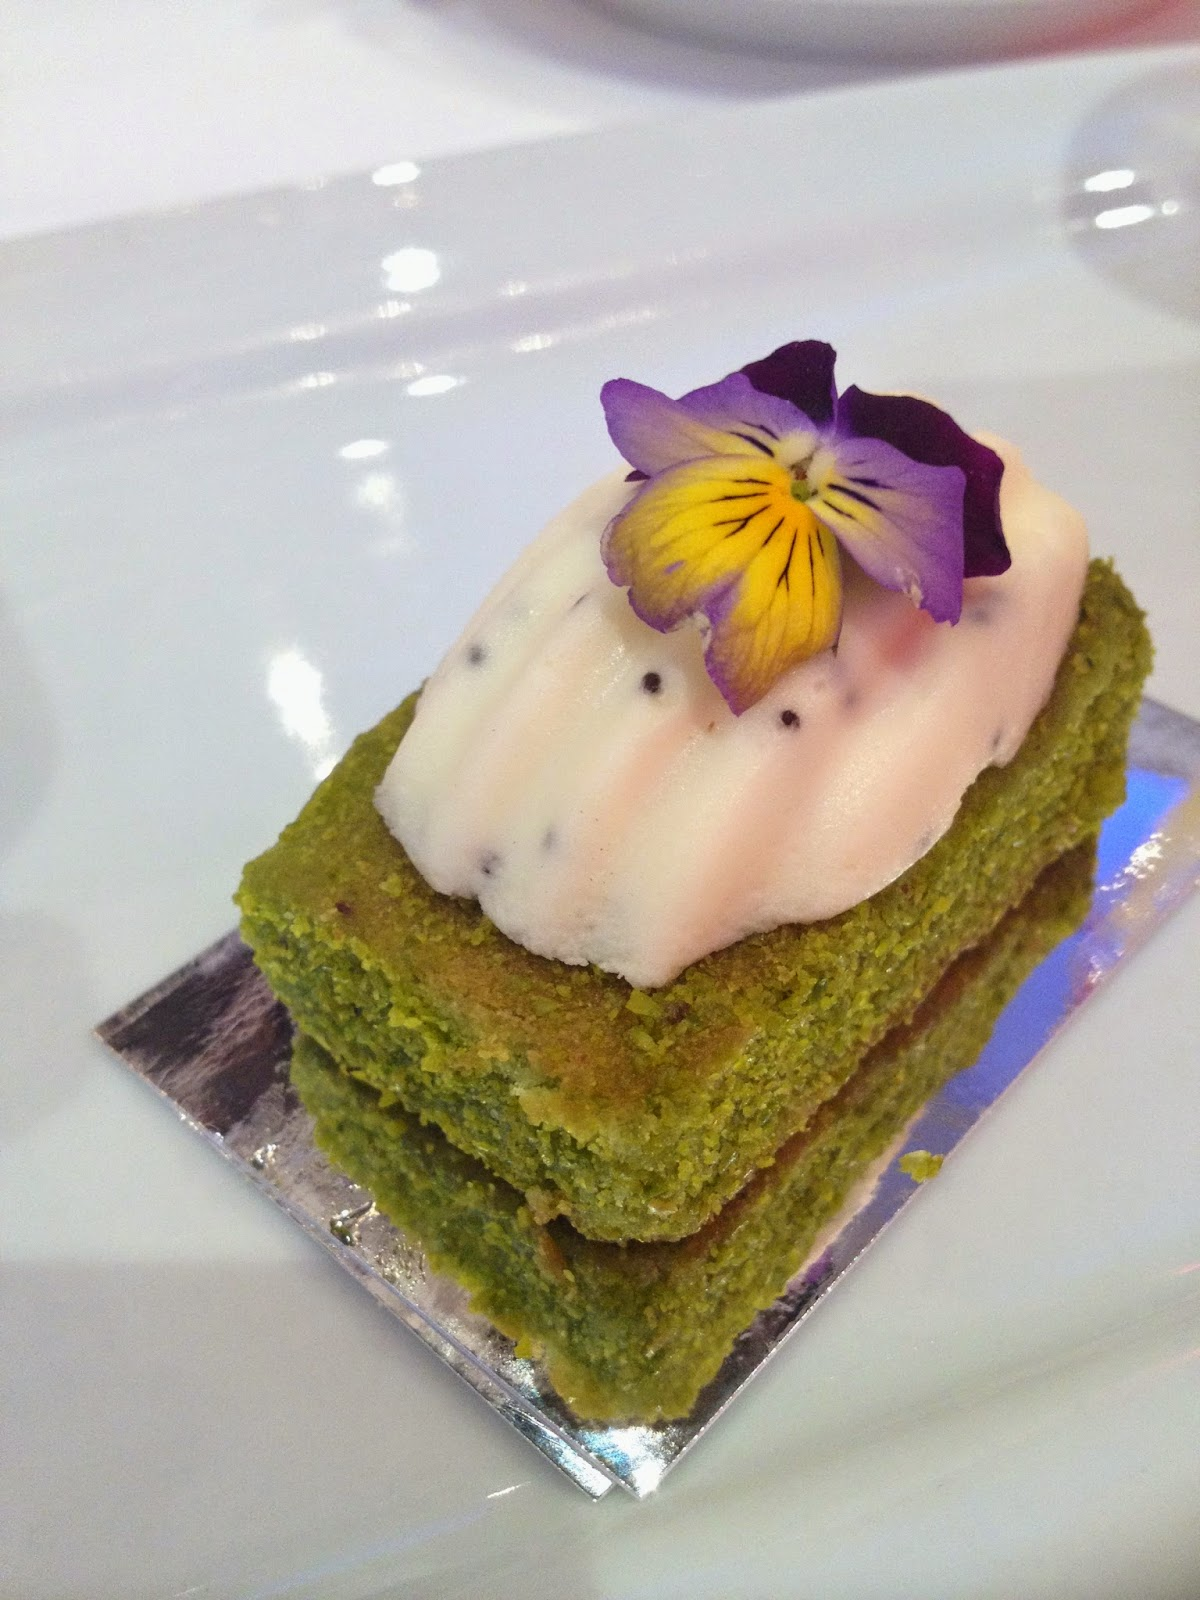 pistachio sponge cake for afternoon tea